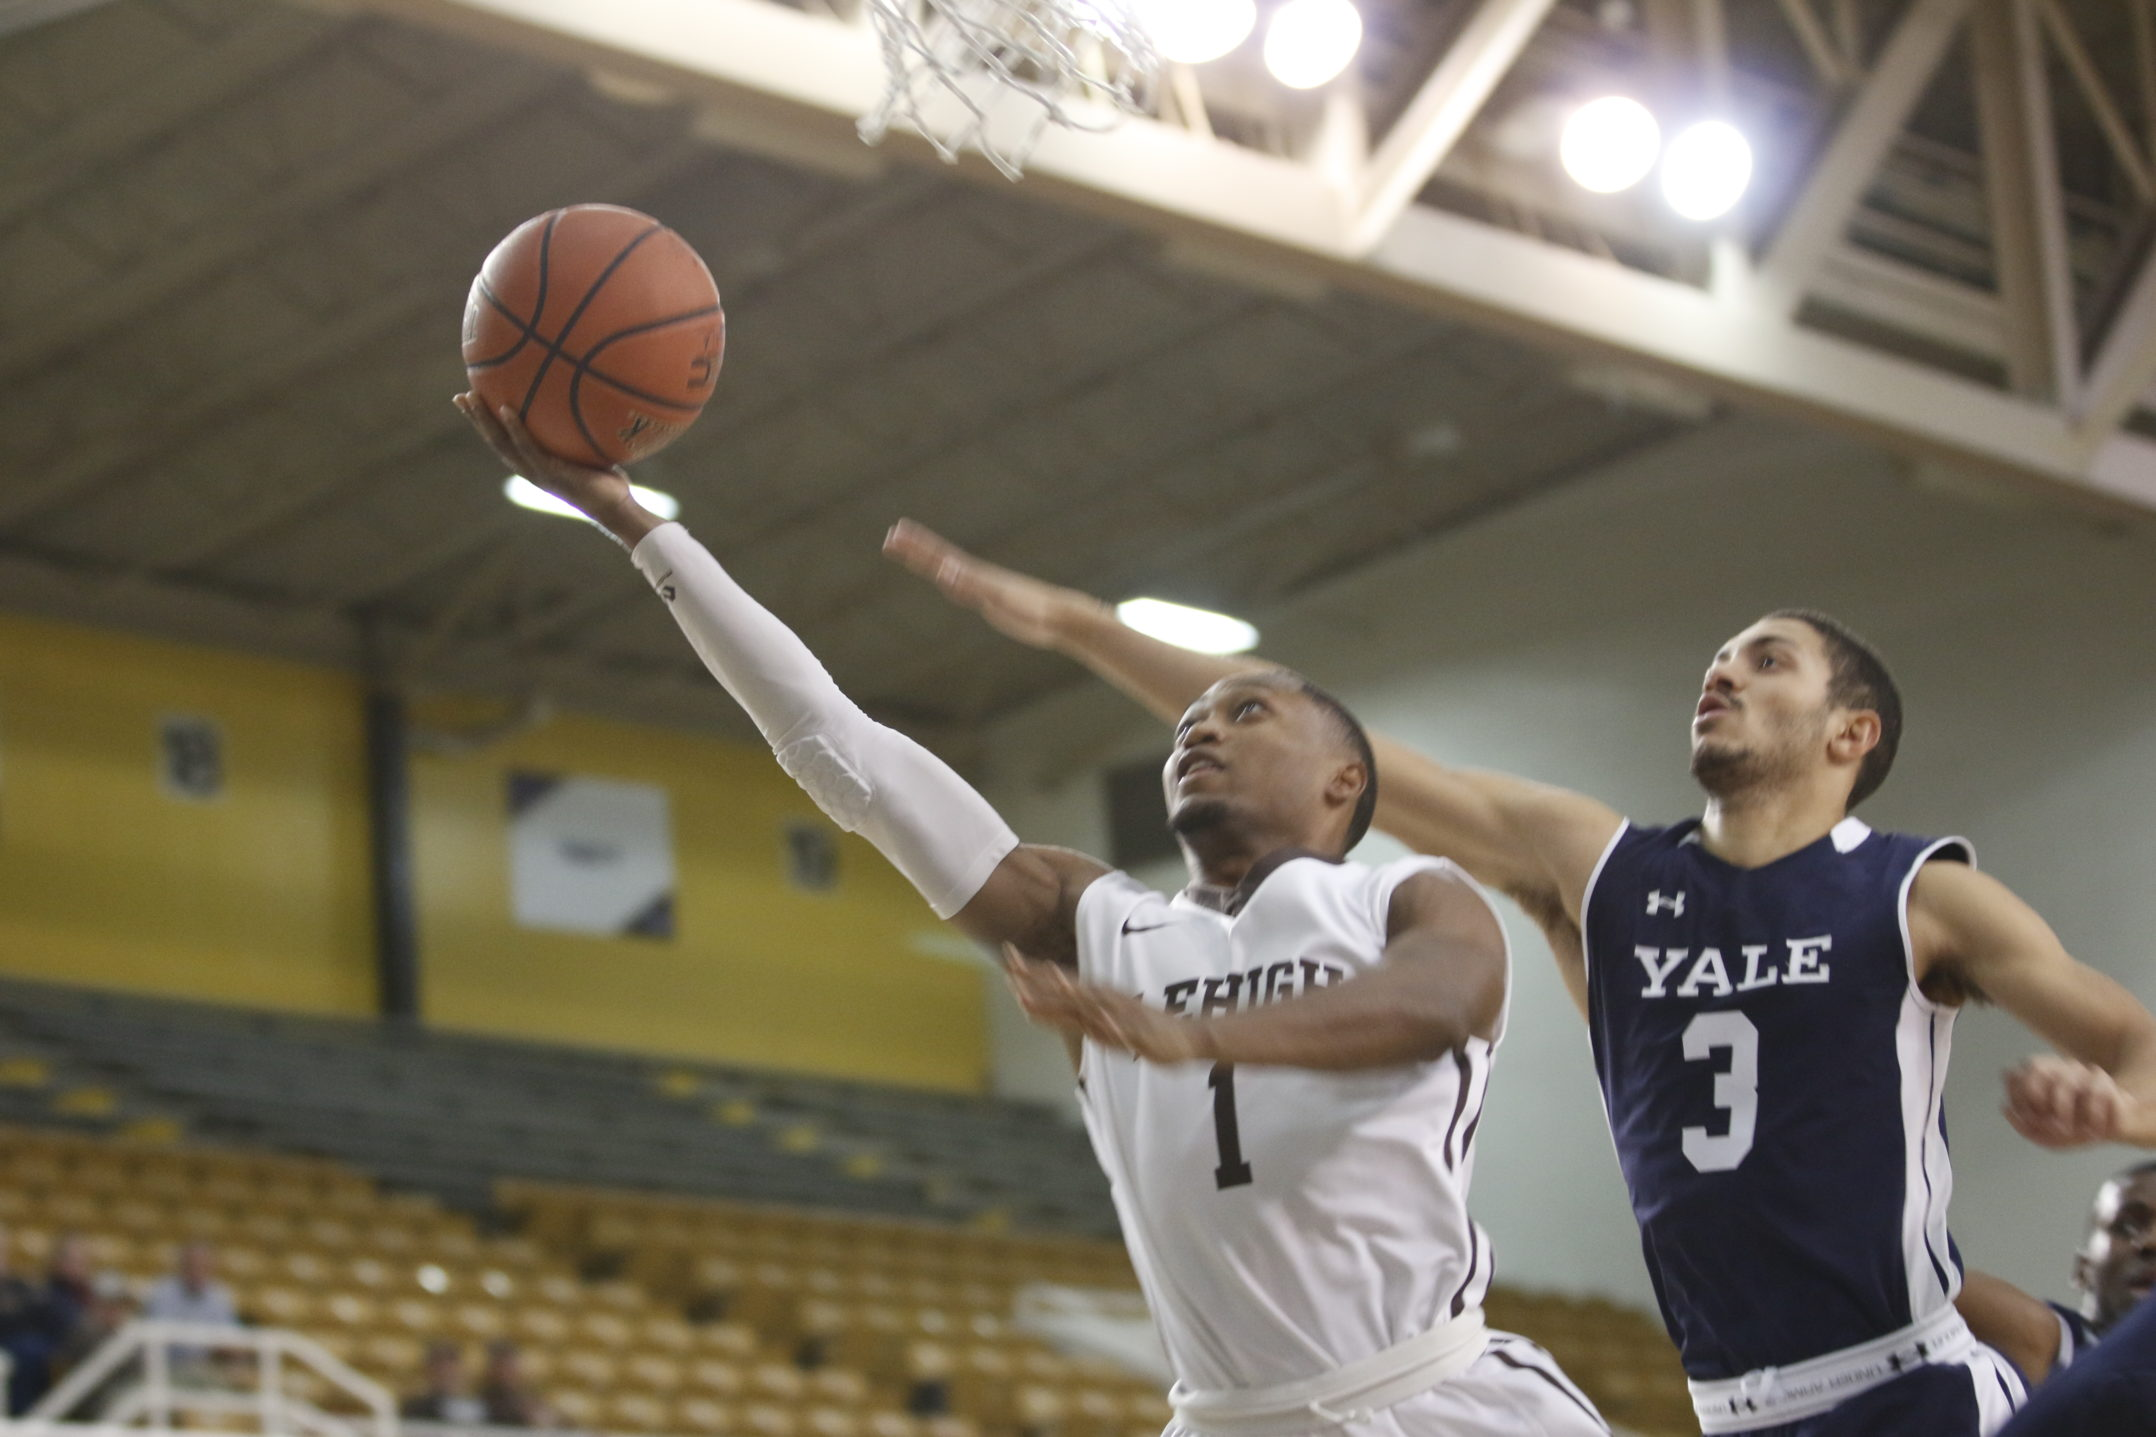 Lehigh senior guard Kahron Ross cruises past a Yale defender for a lay up in the first half of their matchup against the Ivy League opponent on Wednesday, Dec. 6, 2017, at Stabler Arena. Lehigh dropped the contest, 86-77. (Matt Bonshak/B&W Staff).